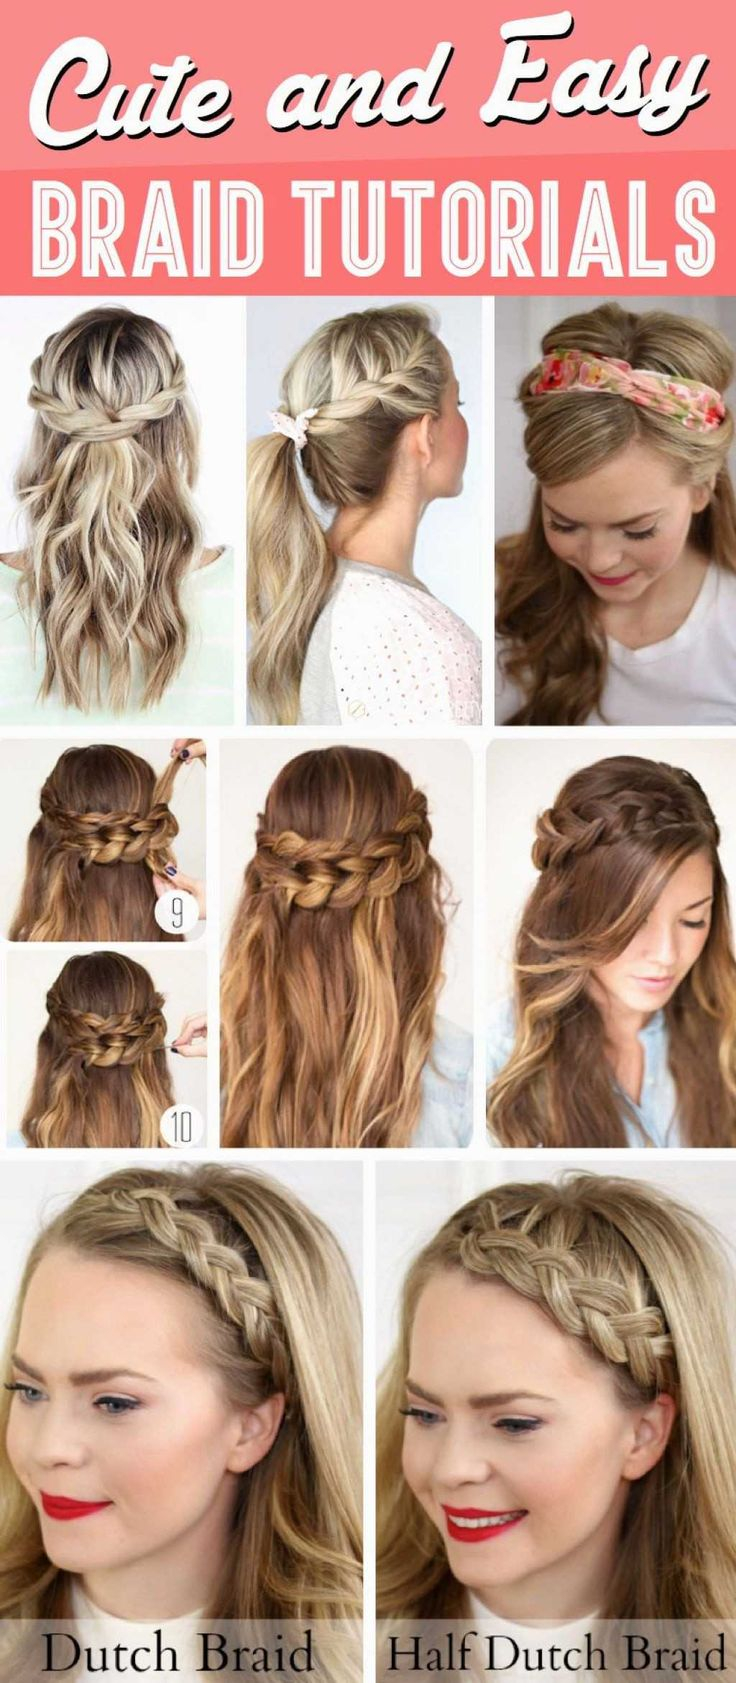 Hairstyles : Lovely Hairstyles For School Beautiful 25 Fresh Easy